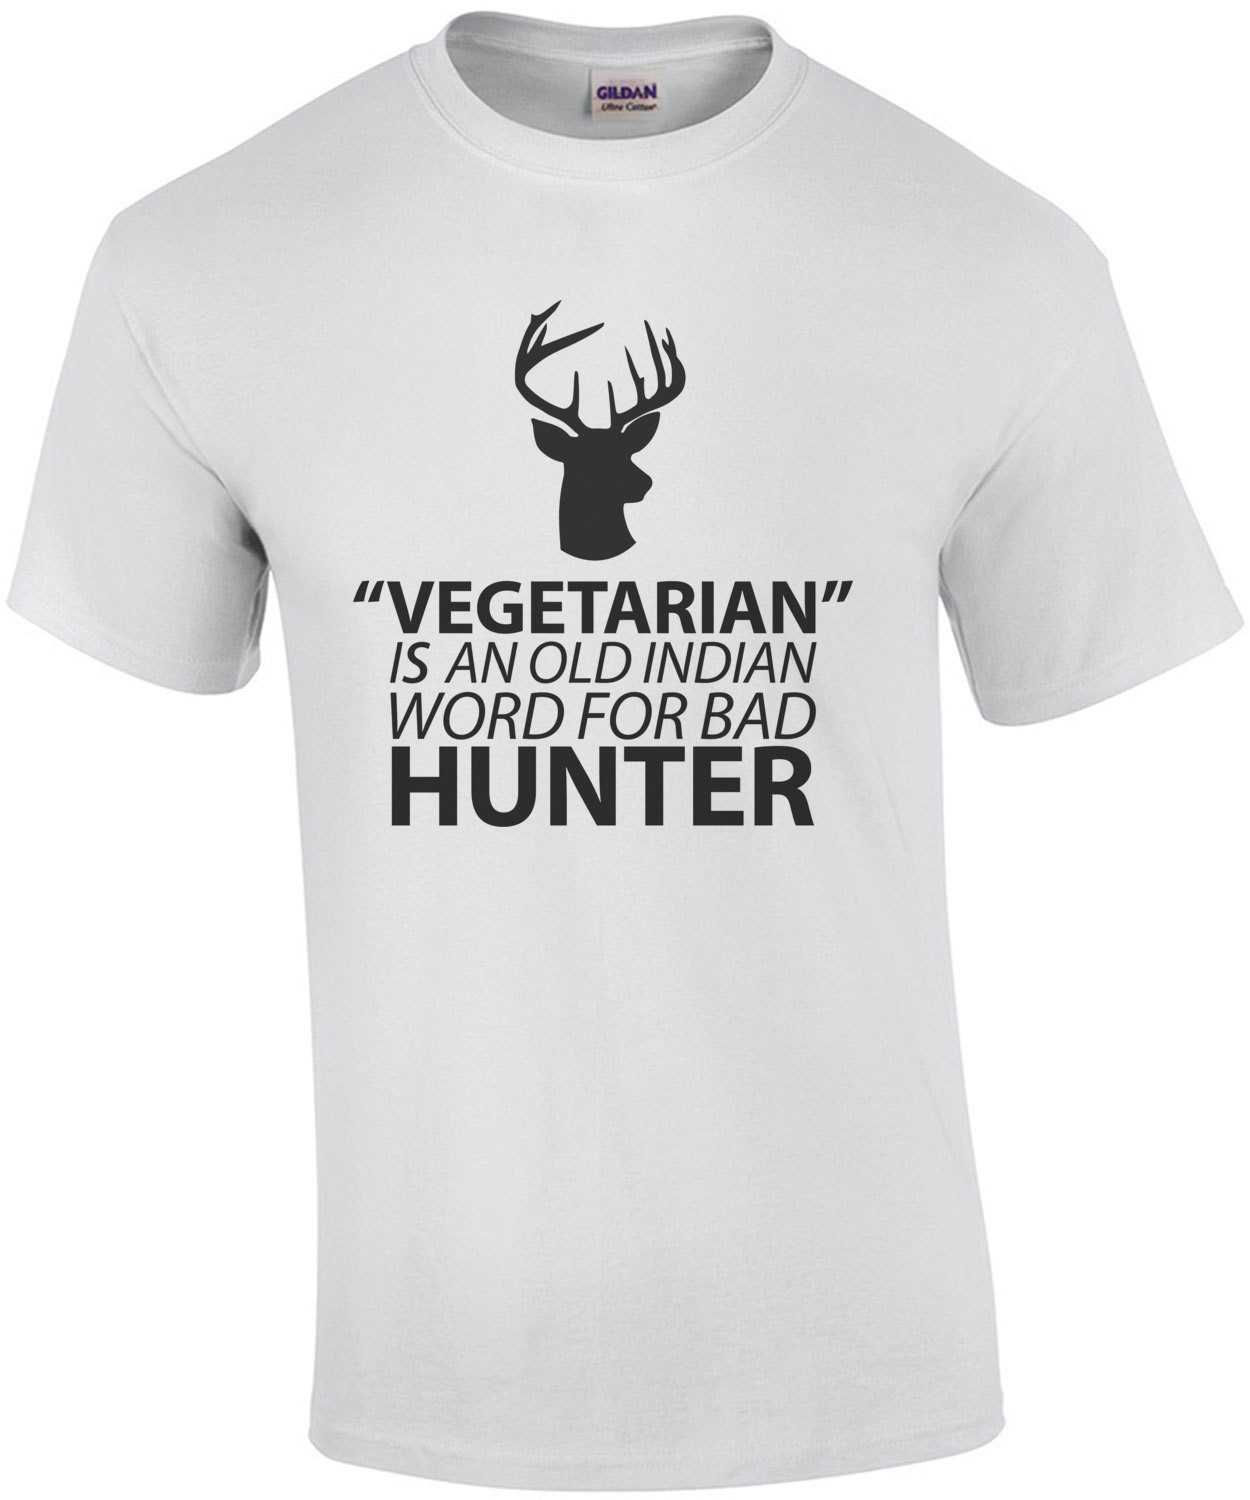 Vegetarian is an old indian word for bad hunter - vegetarian t-shirt